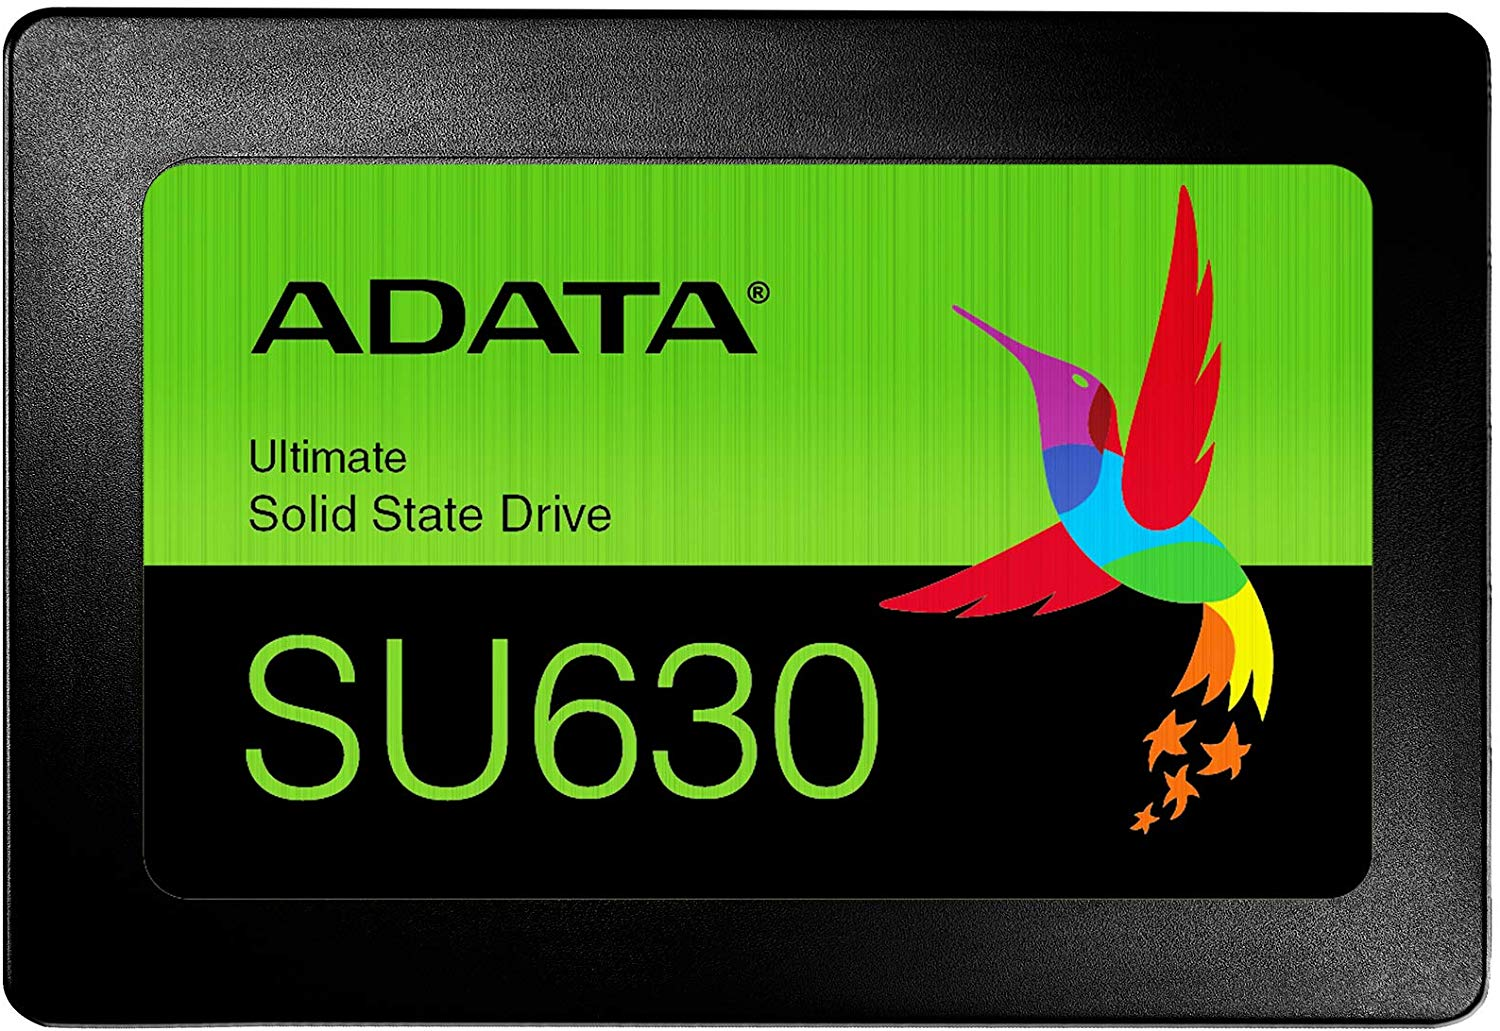 "Adata SU630 240GB 3D-Nand Sata 2.5"" Internal SSD + $4.20 Credit"